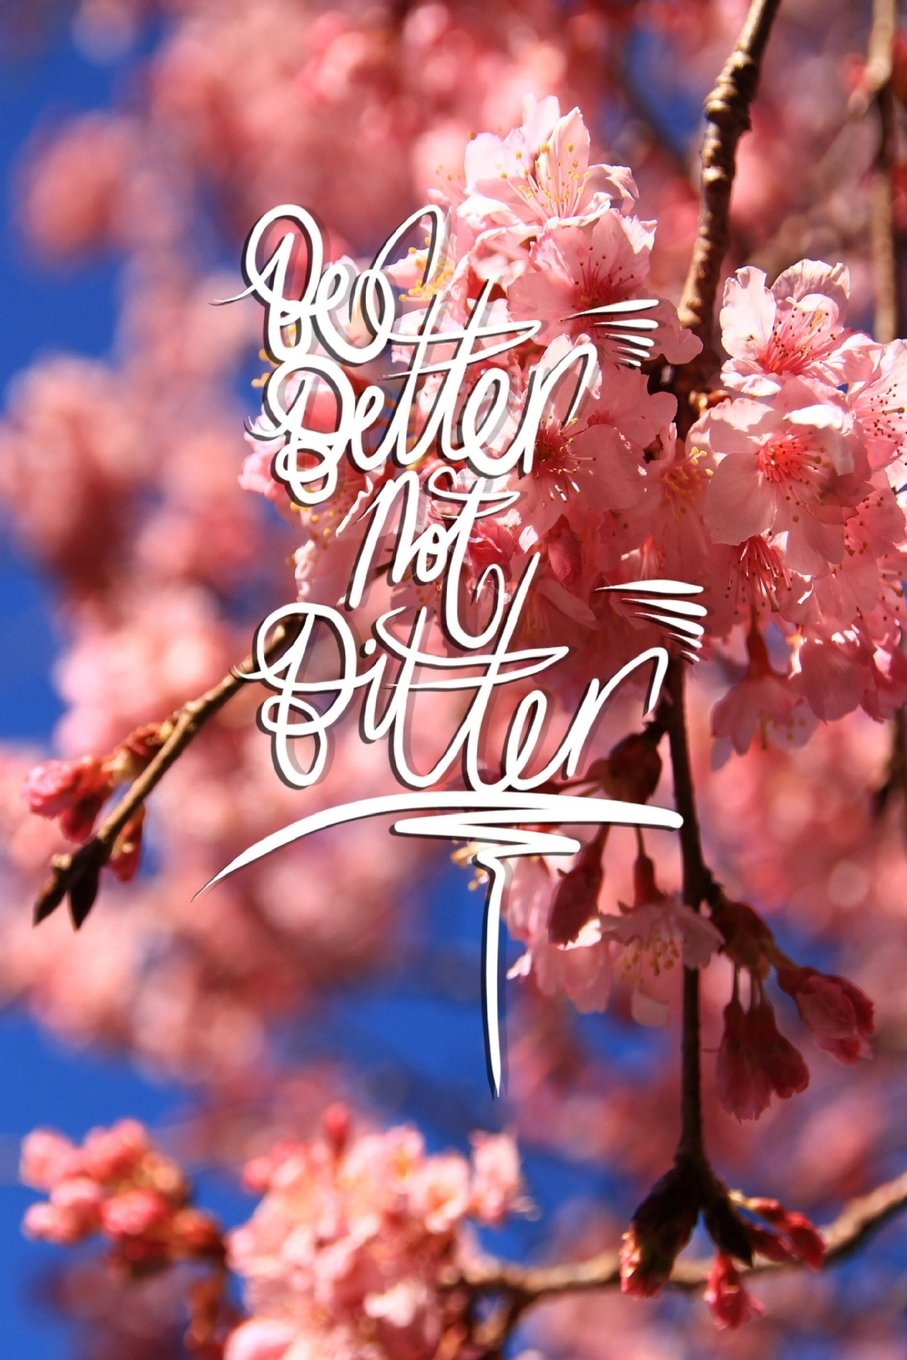 Download Be Better not Bitter: 6x9 Inch Lined Journal/Notebook - The choice is yours! - Sakura, Pink, Cherry blossom, Flower, Calligraphy Art with photography, Gift idea pdf